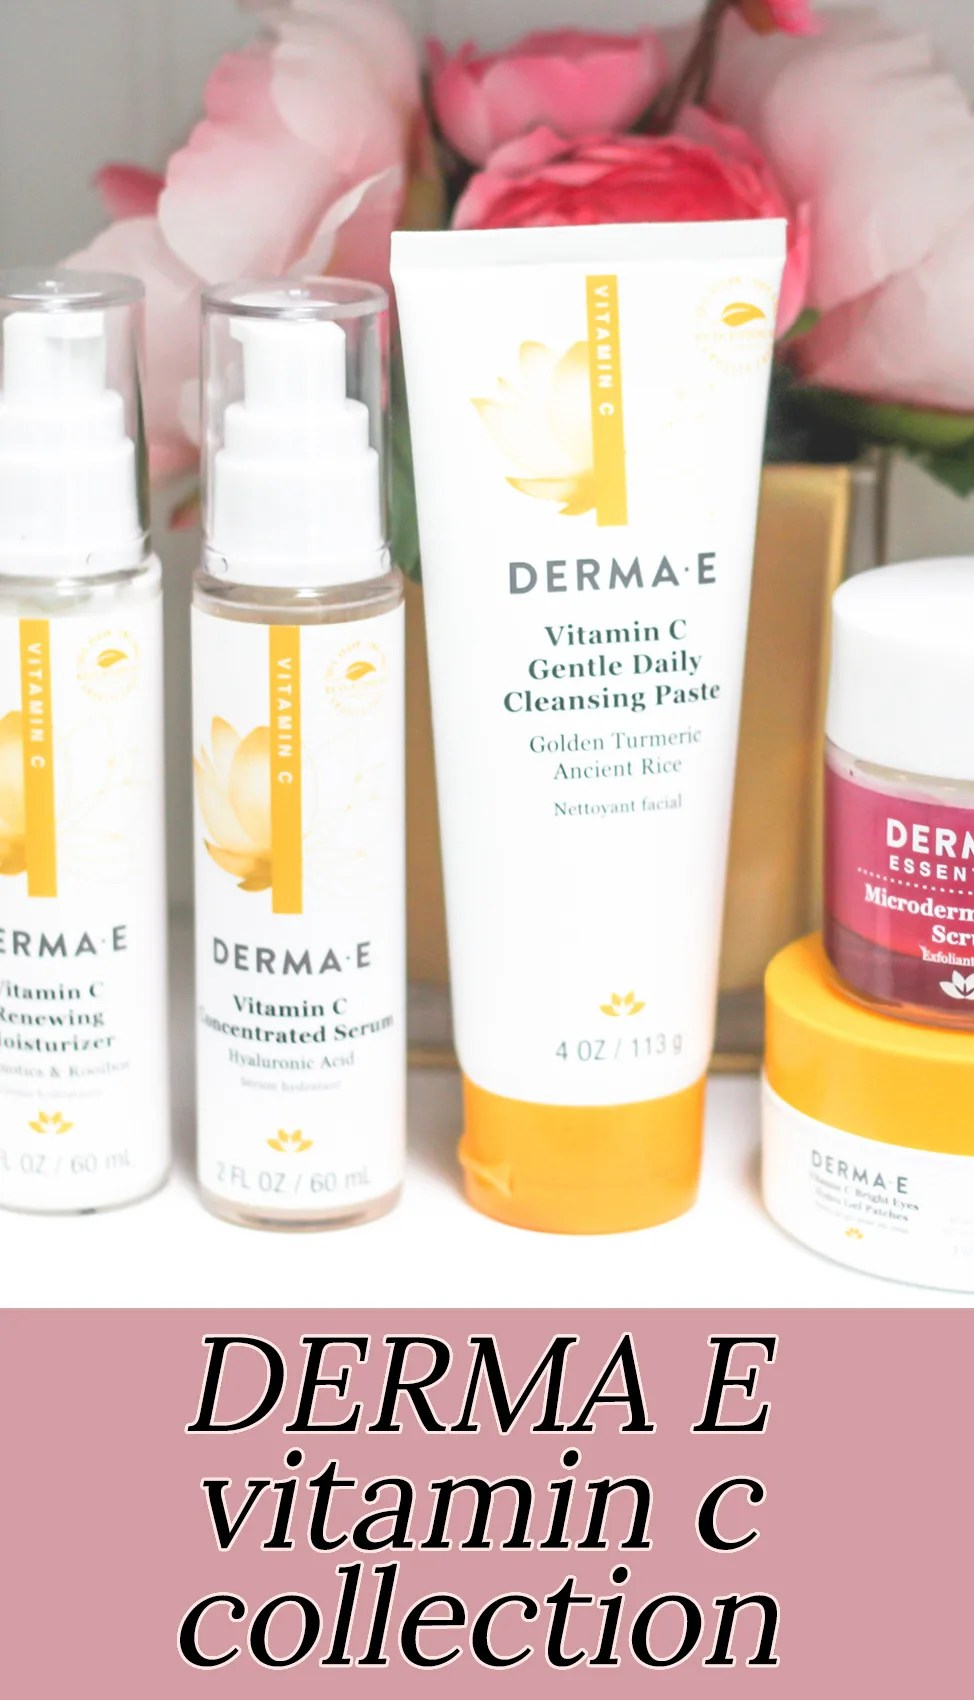 DERMA E Vitamin C Collection